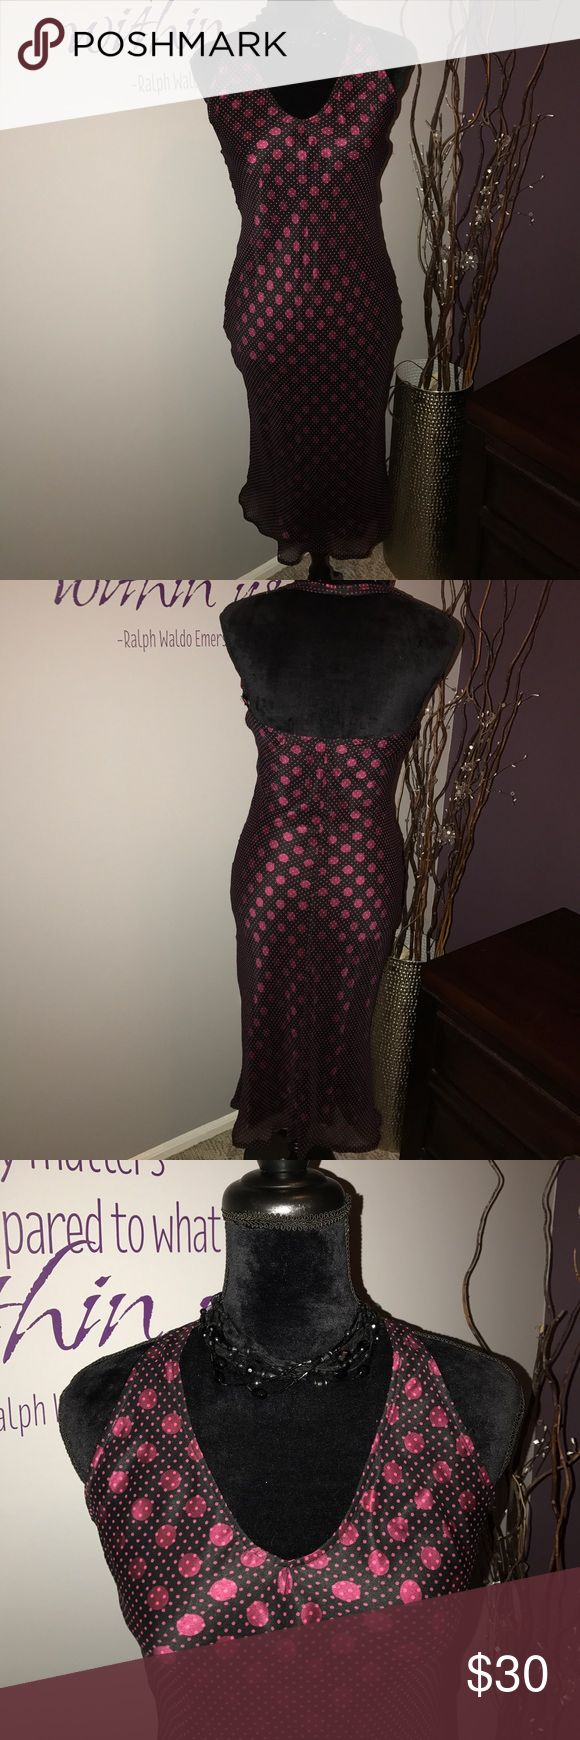 Bebe Annalisa Dress -Brand New! This Halter style dress is gorgeous! The dress is black with Large plum color dots. Then there is a sheer layer over top with smaller plum color dots. Form fitting and true to size. Perfect for that wedding coming up!! bebe Dresses Maxi